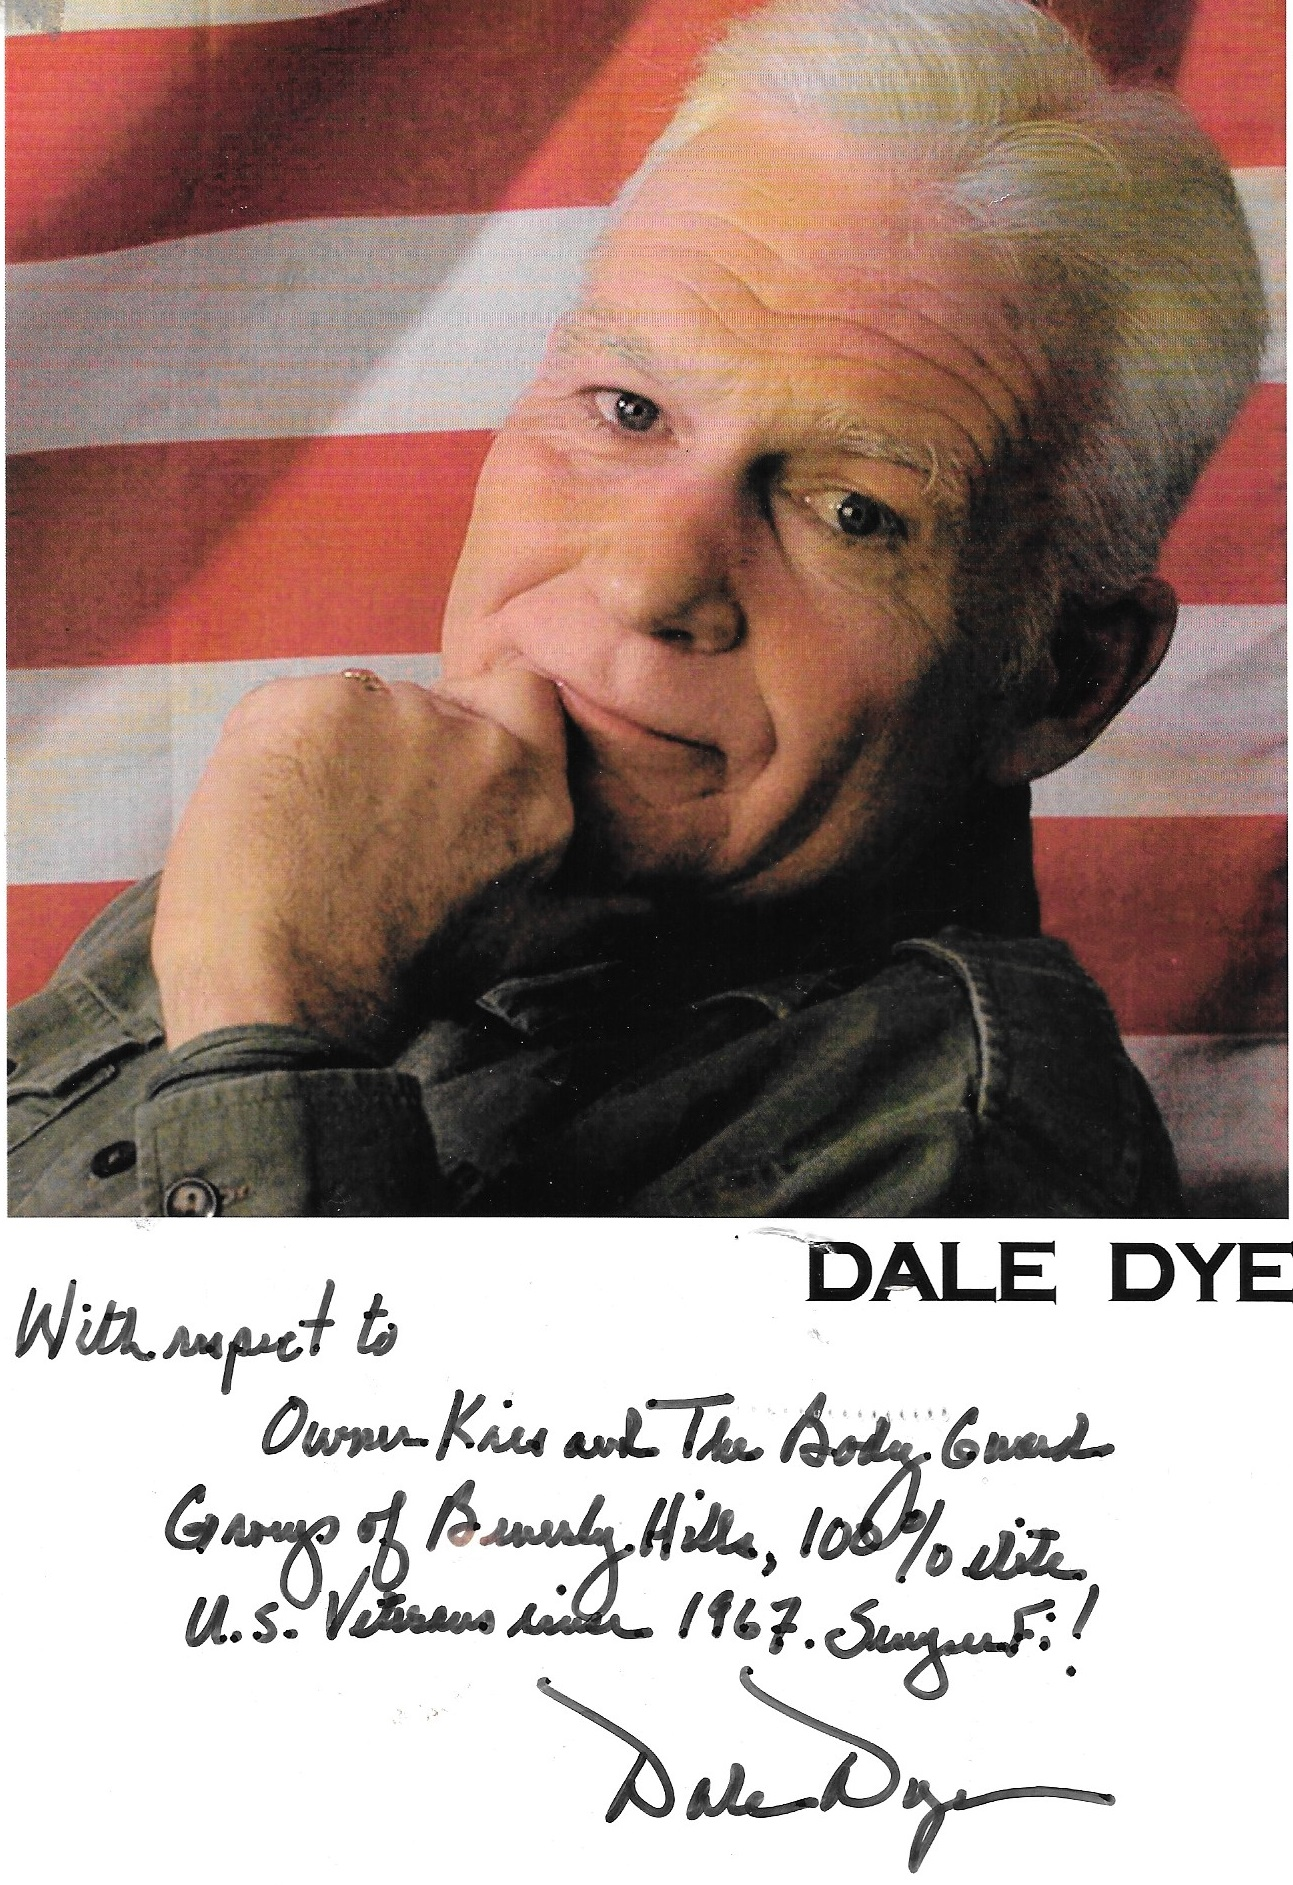 Dale Dye signed pic to Kris Herzog and The Bodyguard Group of Beverly Hills 90210